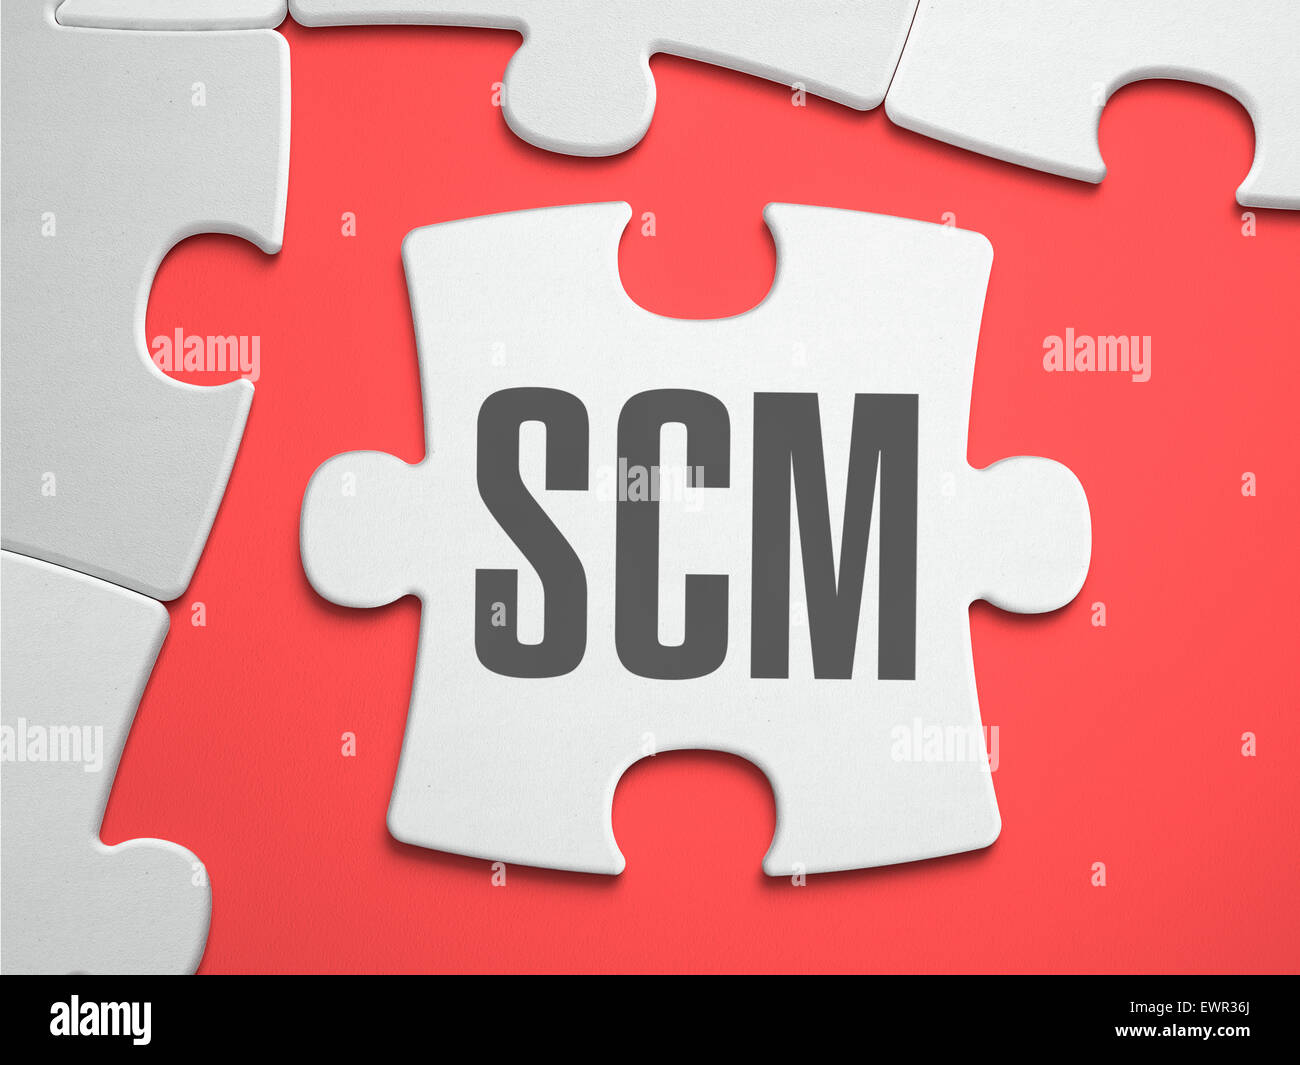 SCM - Supply Chain Management - Supply Chain Management - Text on Puzzle on the Place of Missing Pieces. Scarlett Stock Photo